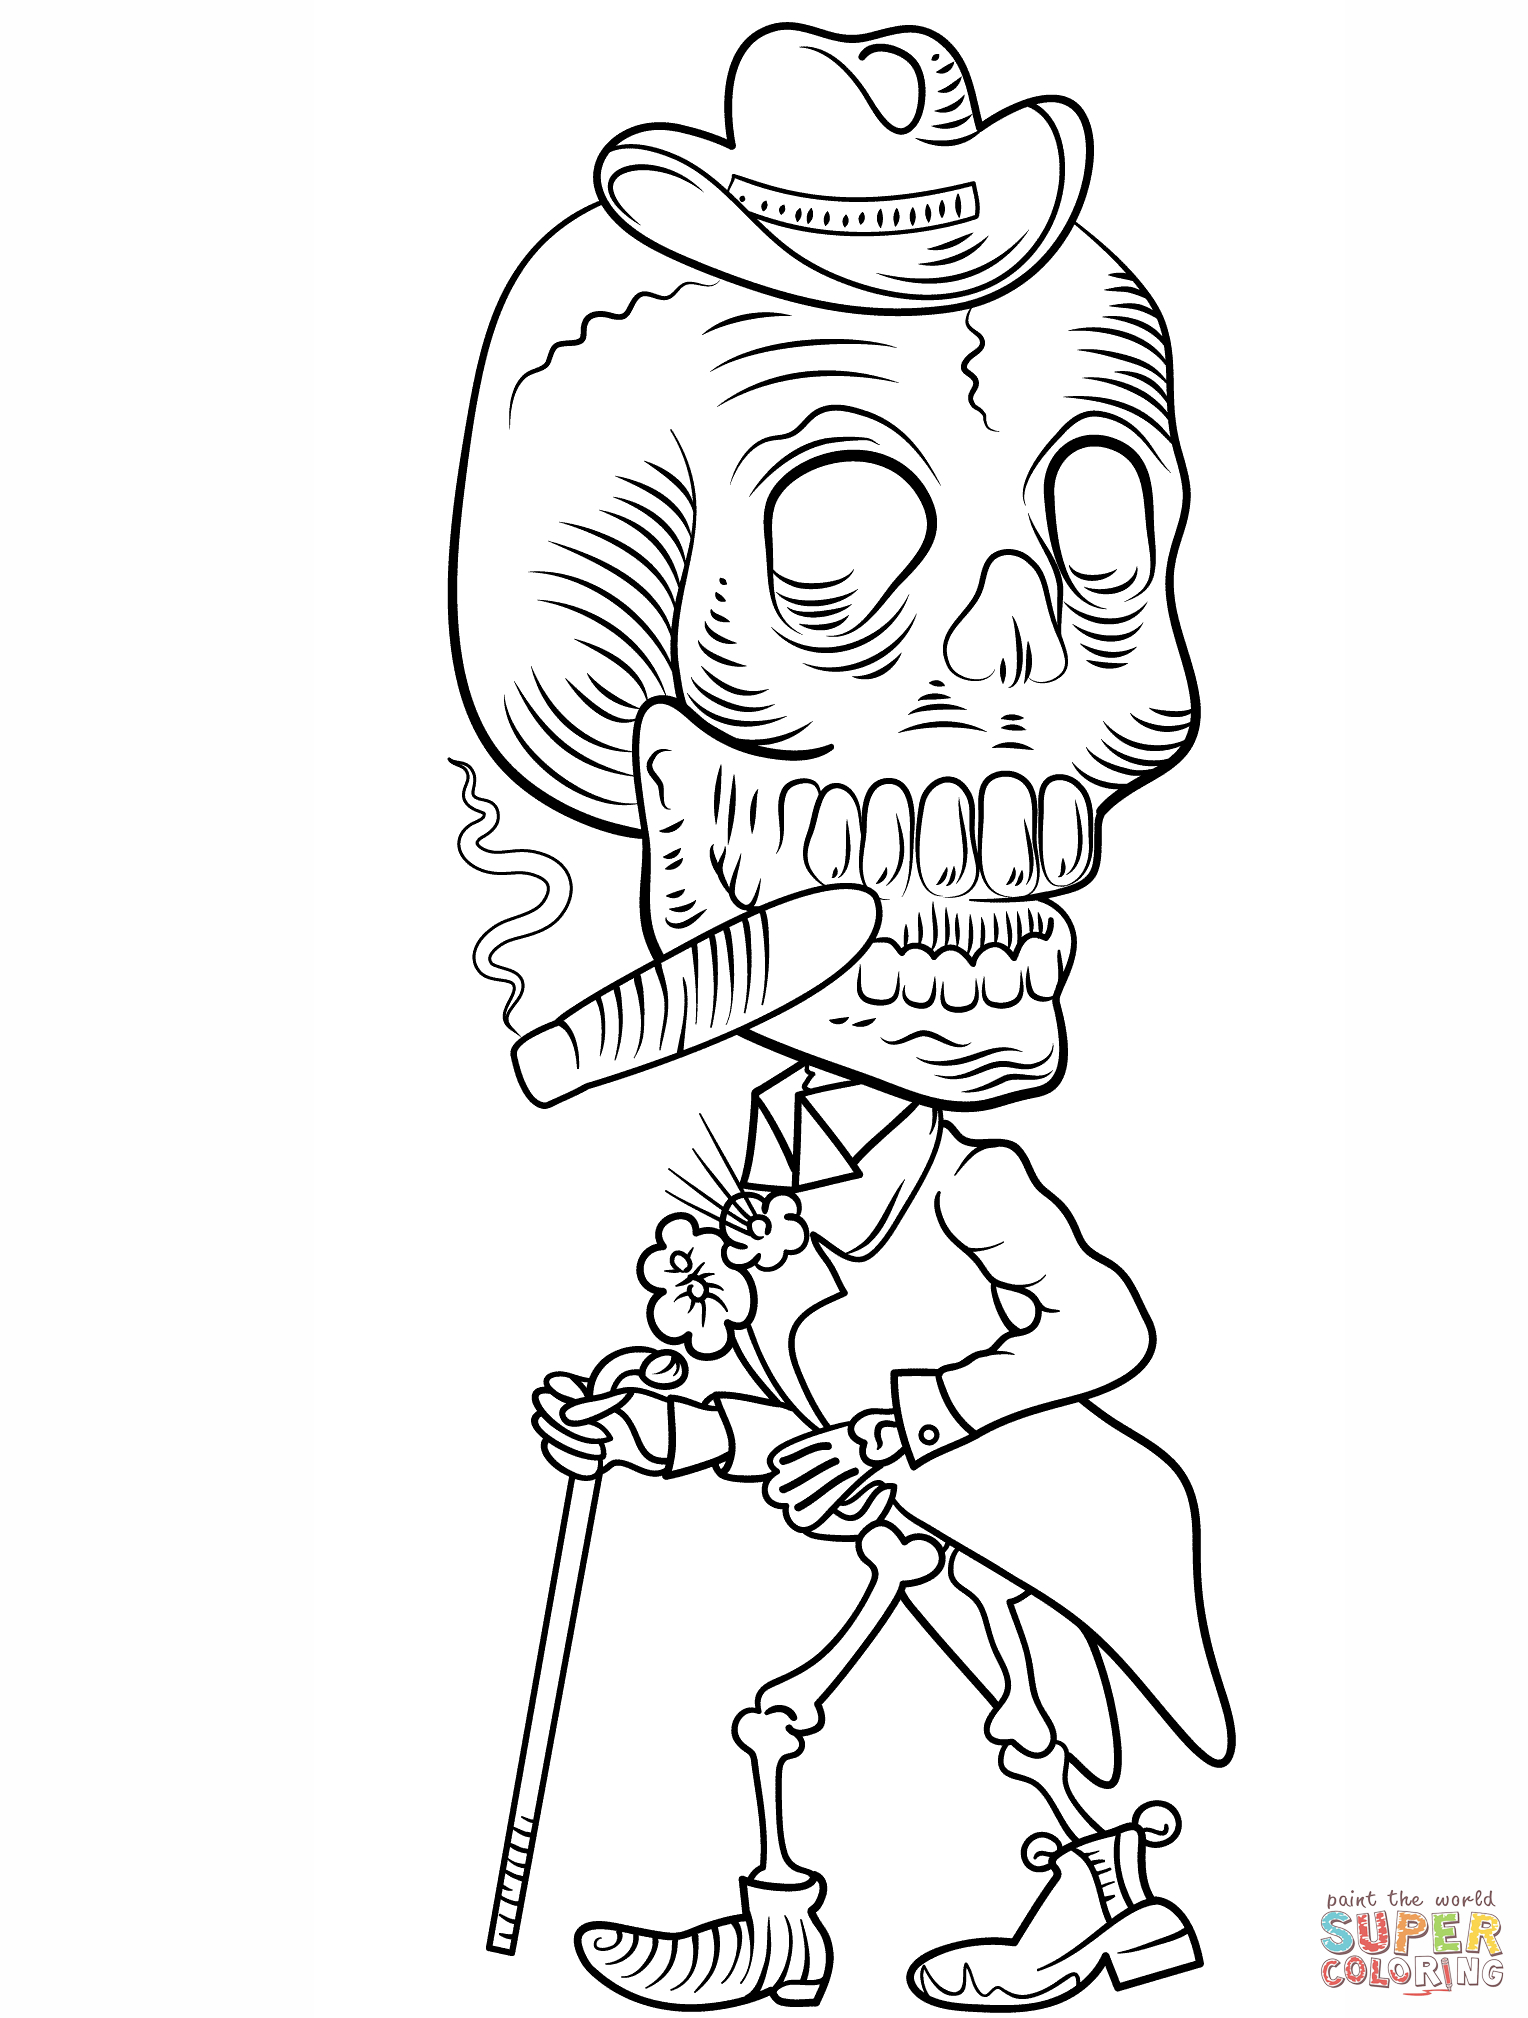 Day Of The Dead Skeleton Coloring Page | Free Printable Coloring Pages - Free Printable Day Of The Dead Coloring Pages